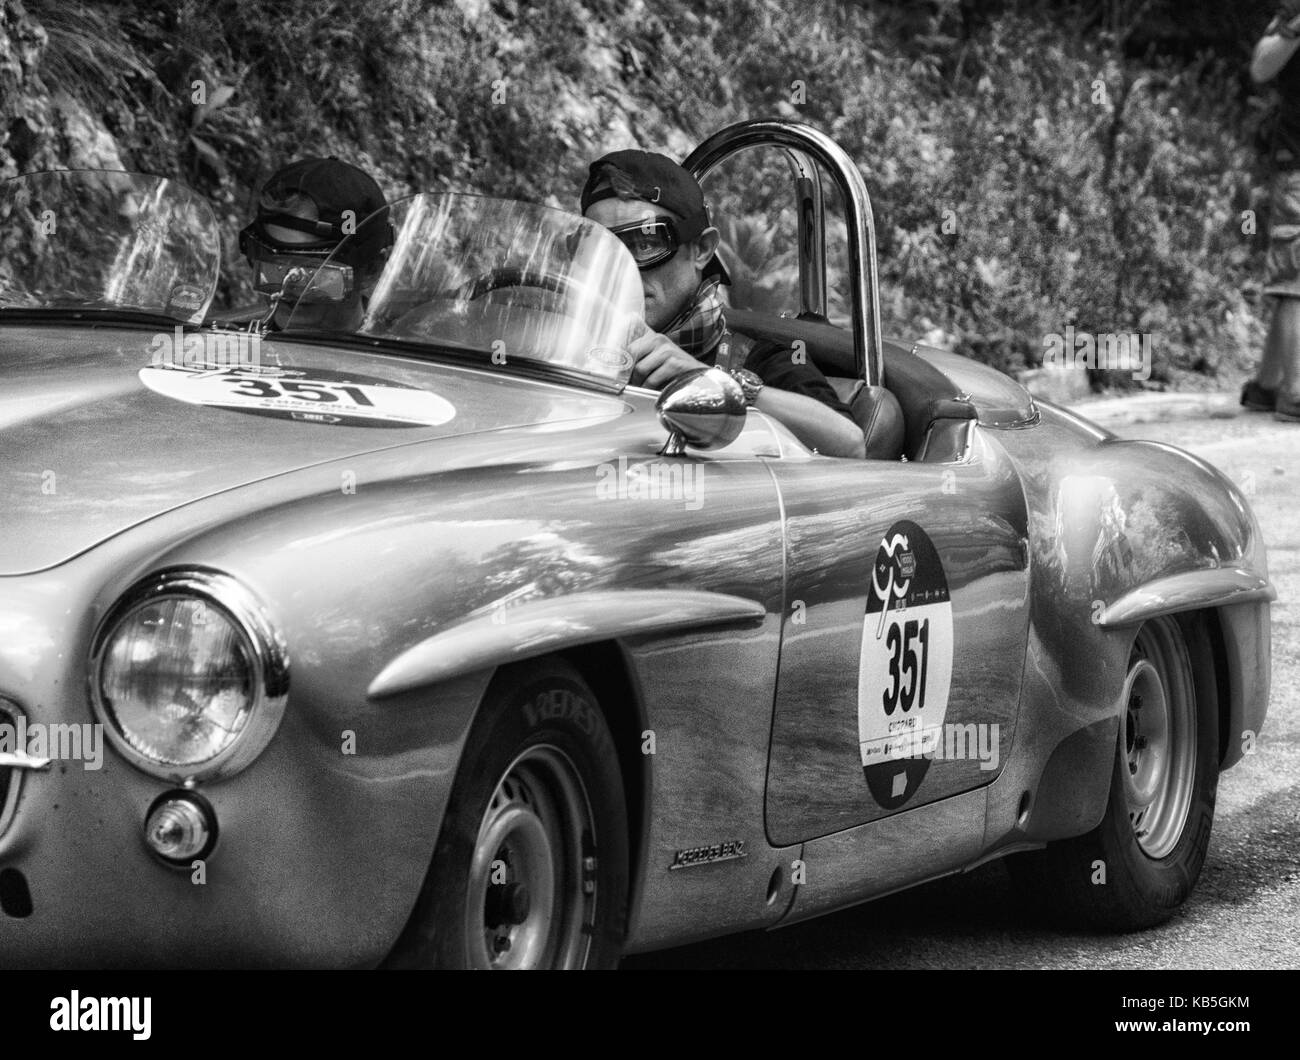 MERCEDES-BENZ 190 SL 1955 on an old racing car in rally Mille Miglia ...